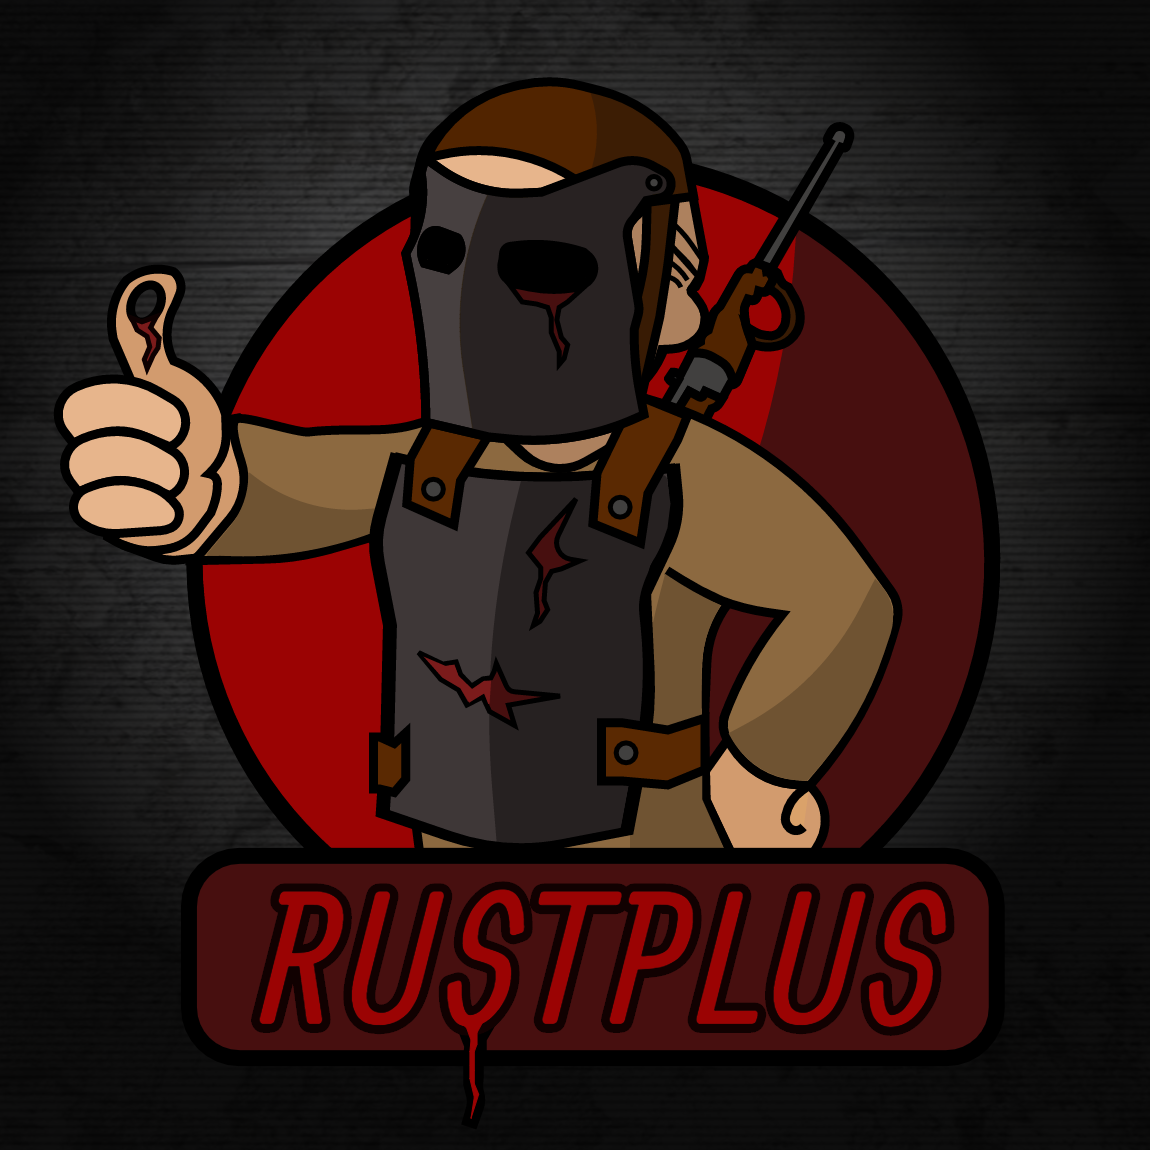 Rust Fallout Steam Profile Pic in 2019 Steam profile